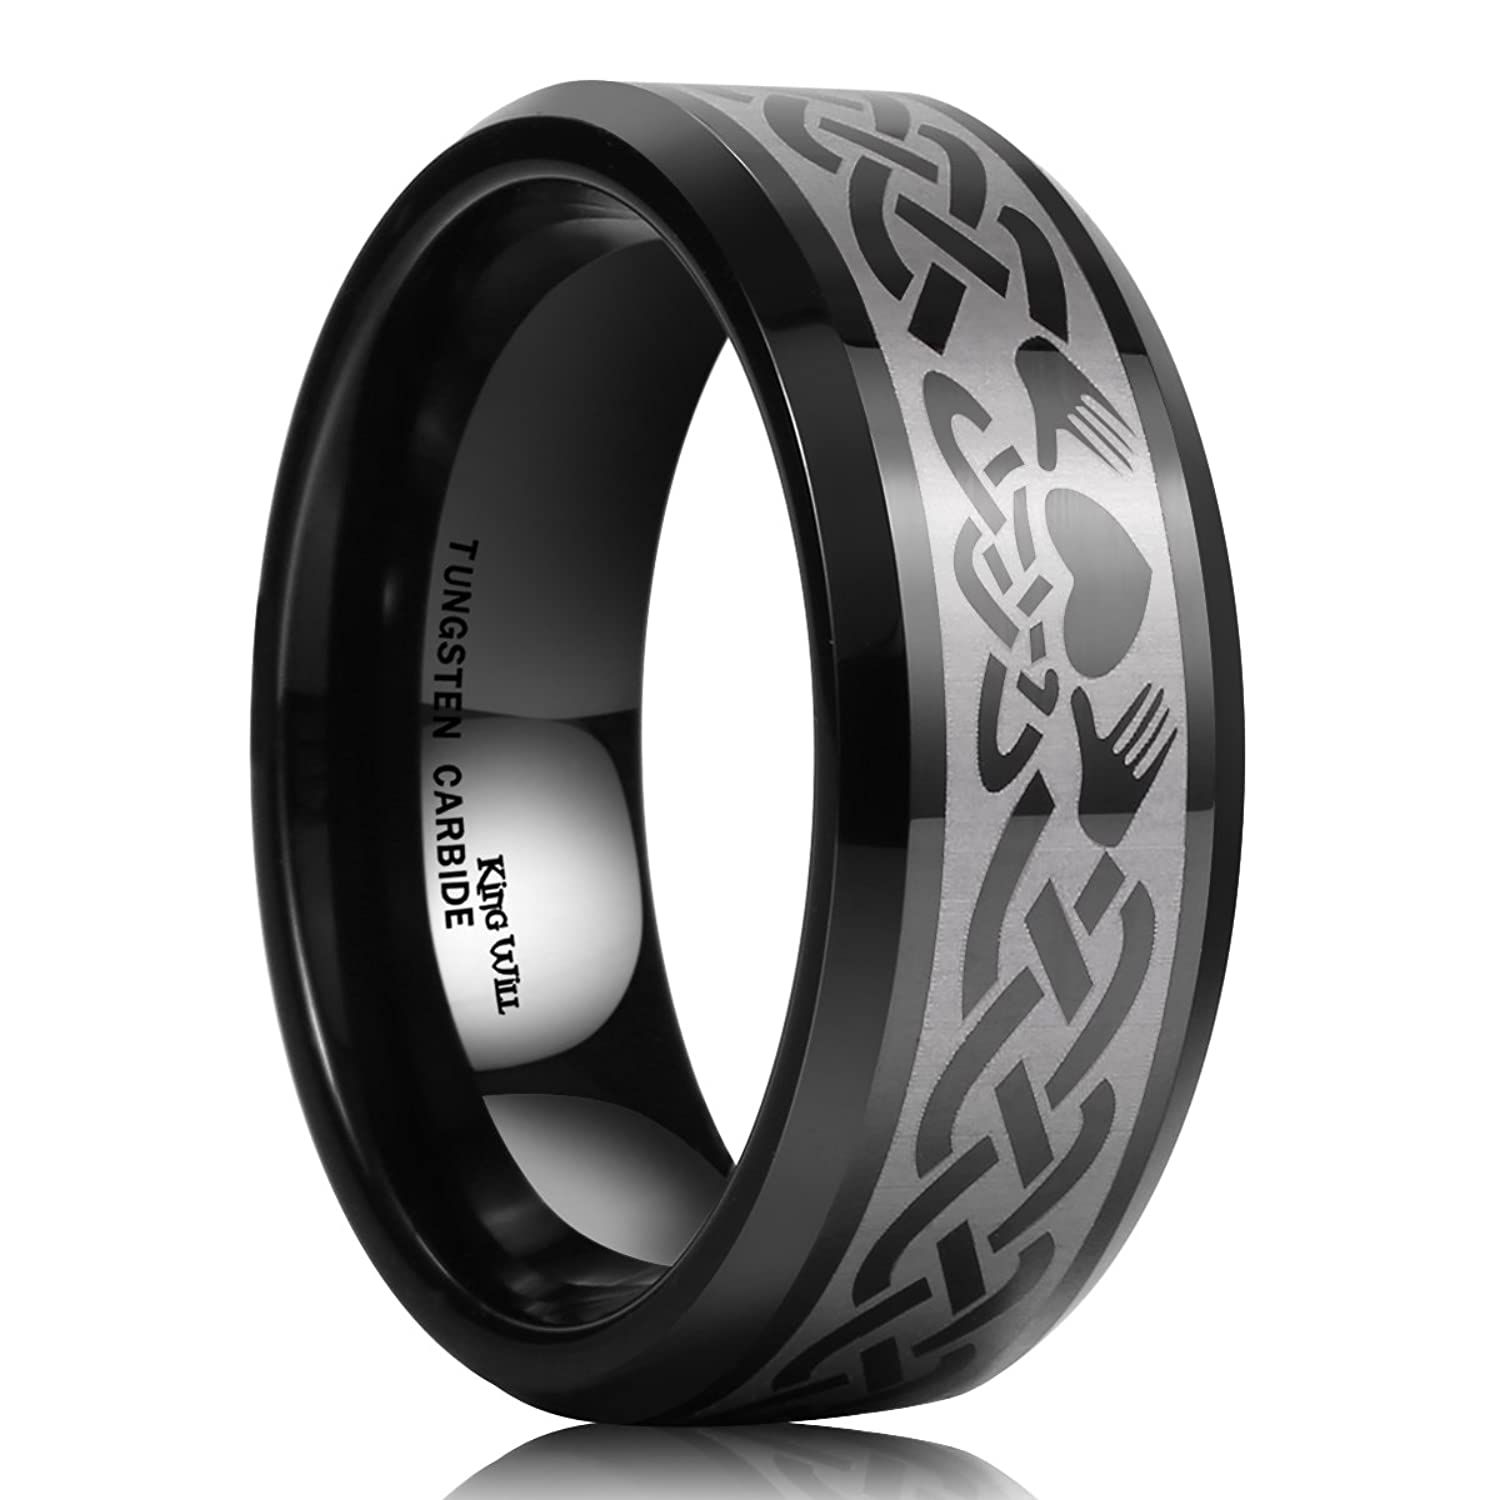 Amazon king will mens 8mm black tungsten carbide ring laser amazon king will mens 8mm black tungsten carbide ring laser irish claddagh engagement polish wedding band comfort fit jewelry biocorpaavc Gallery